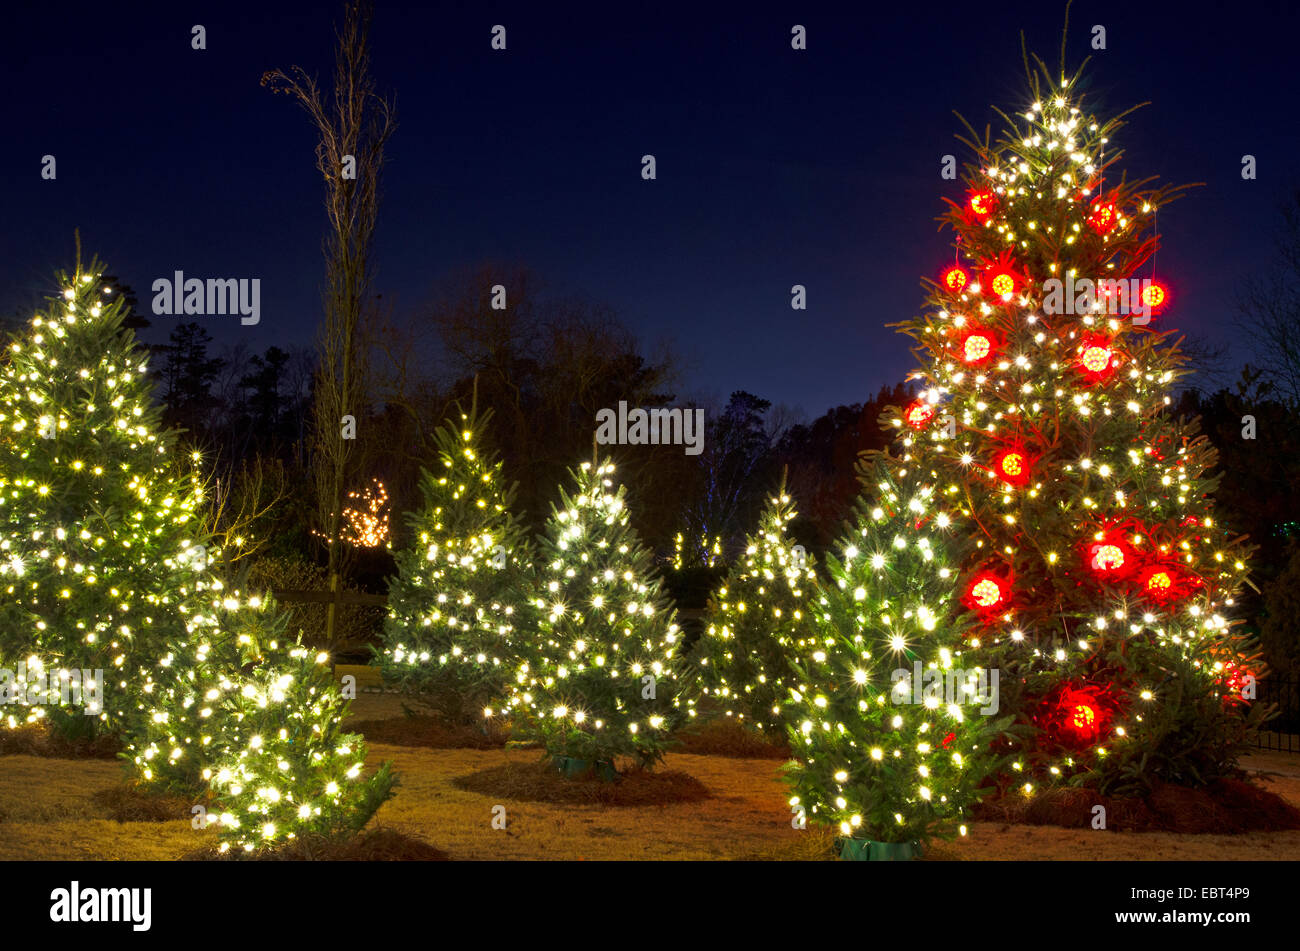 Outdoor Christmas Tree With Lights.Outdoor Christmas Trees Have Been Decorated With Red And White